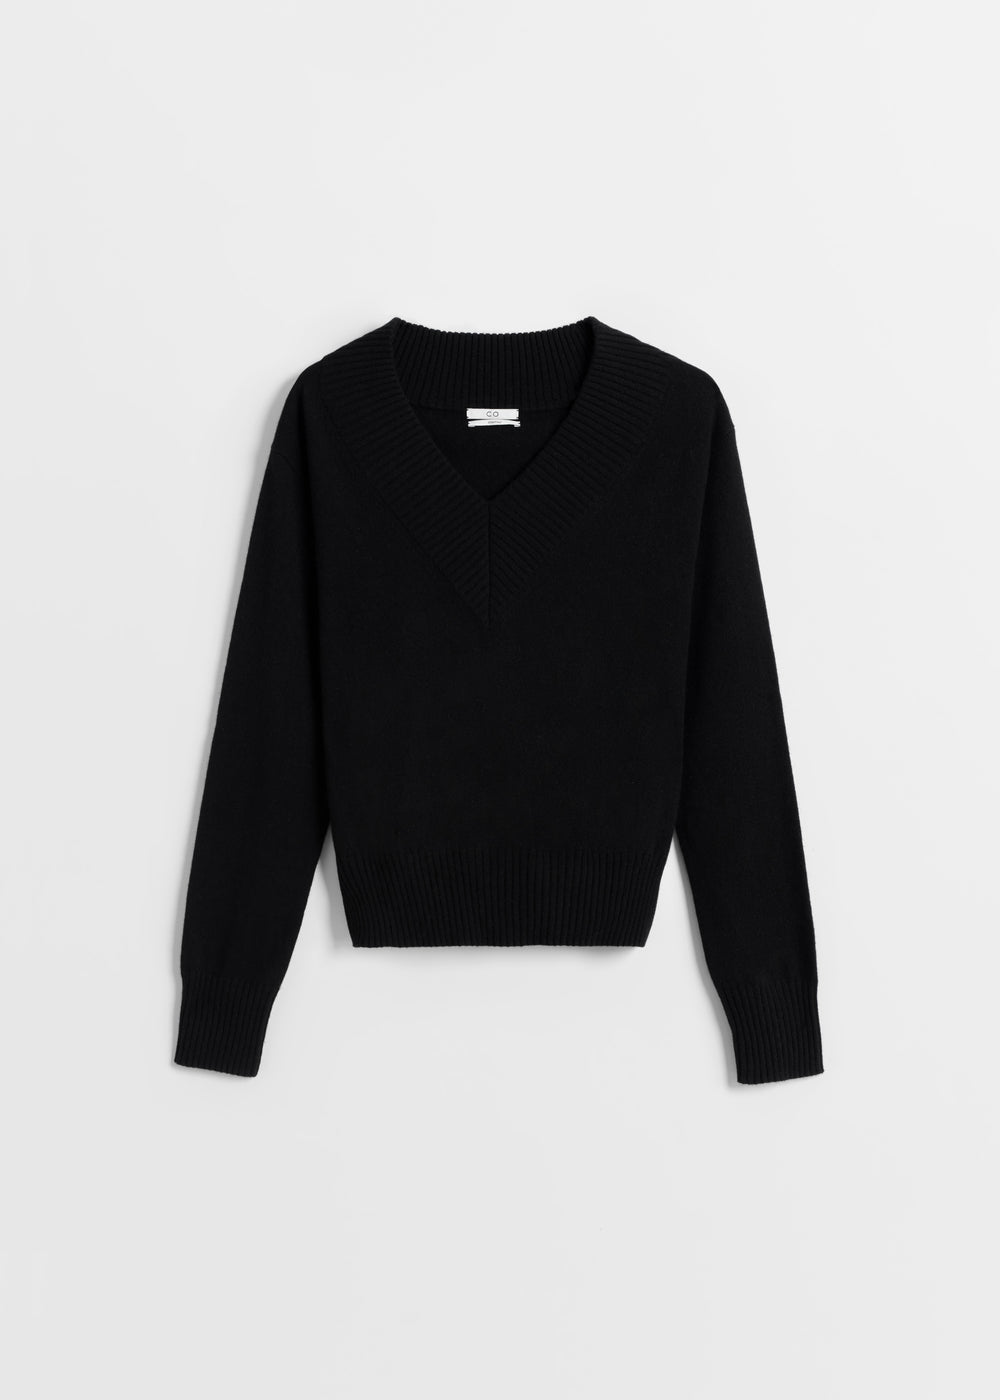 Cashmere V-Neck Sweater - Ivory in Black by Co Collections